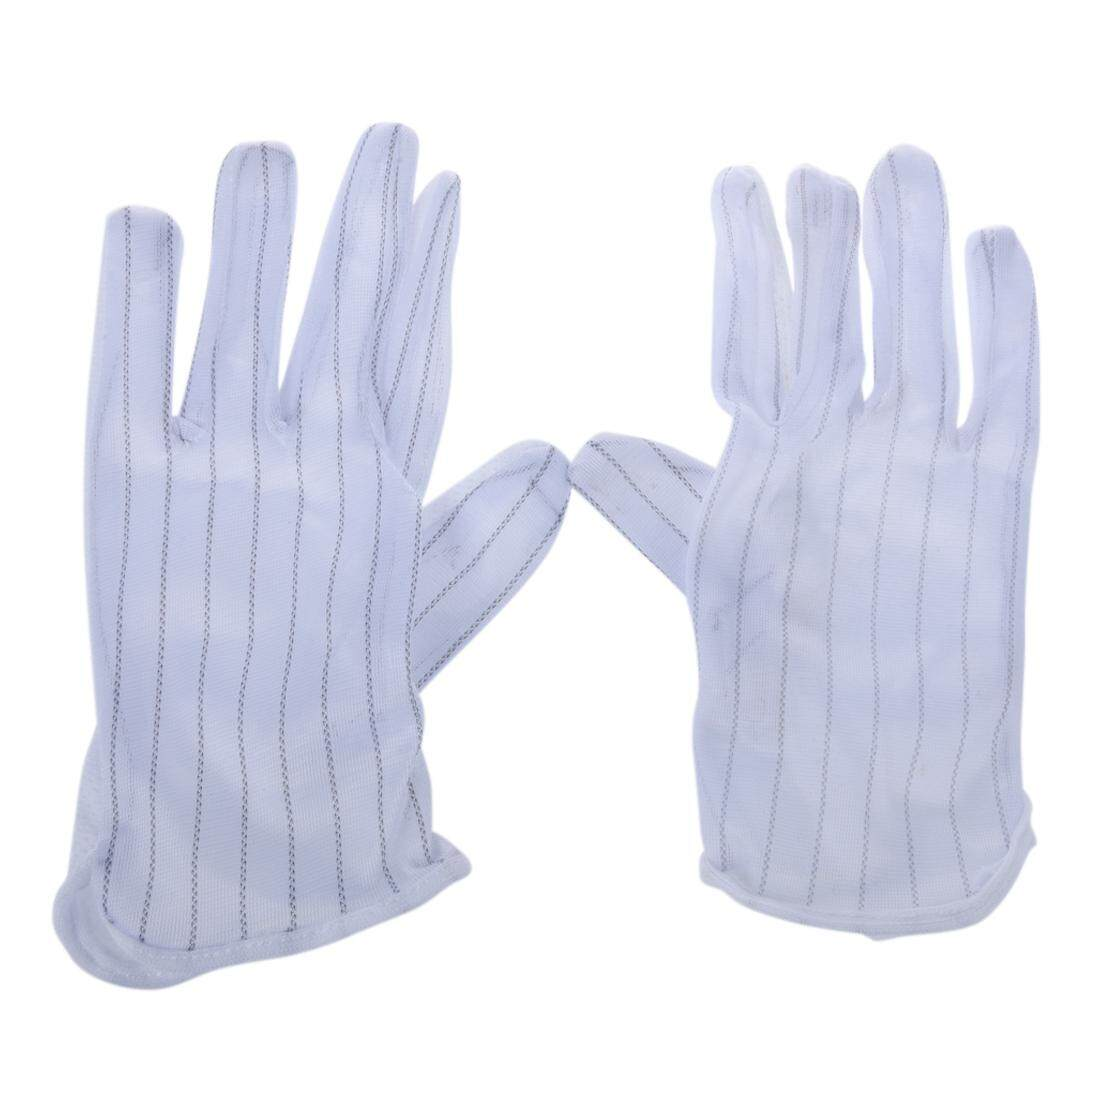 1 Pair Anti-static Anti-skid Gloves ESD PC Computer Electronic Working White New (Intl) - intl